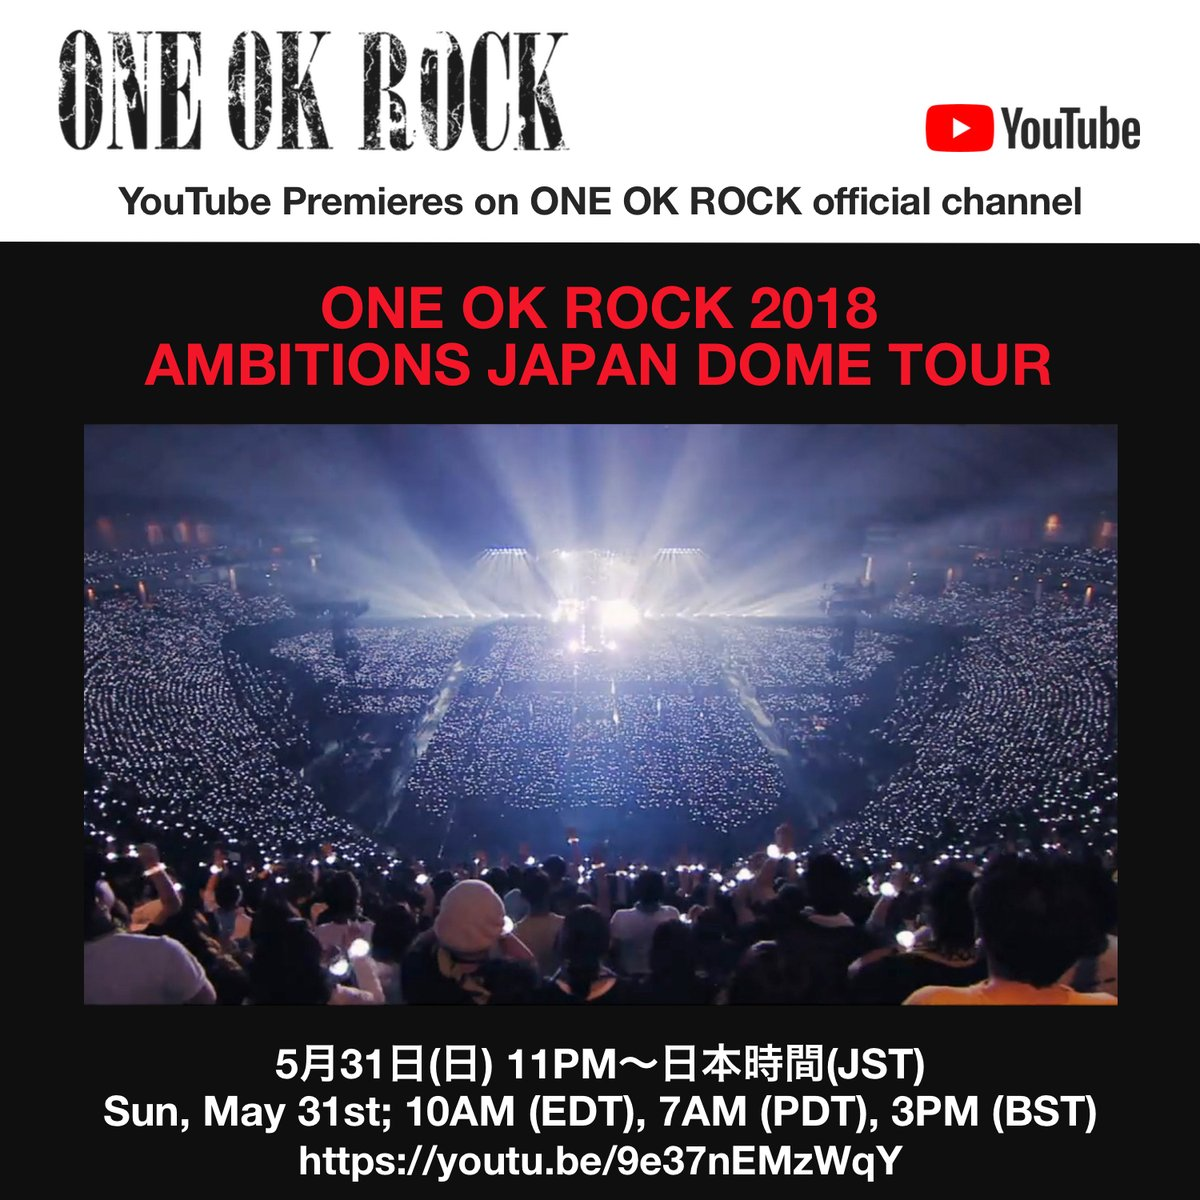 Its here, 2018 Ambitions Dome Tour!! A massive Thank You to everyone following our streams. We have more content so give us a follow!! #strongertogether #ONEOKROCK Sunday, May 31st 11:00PM (JST) 10:00 AM (EDT), 7:00 AM (PDT), 3:00 PM (BST) URL: youtu.be/9e37nEMzWqY